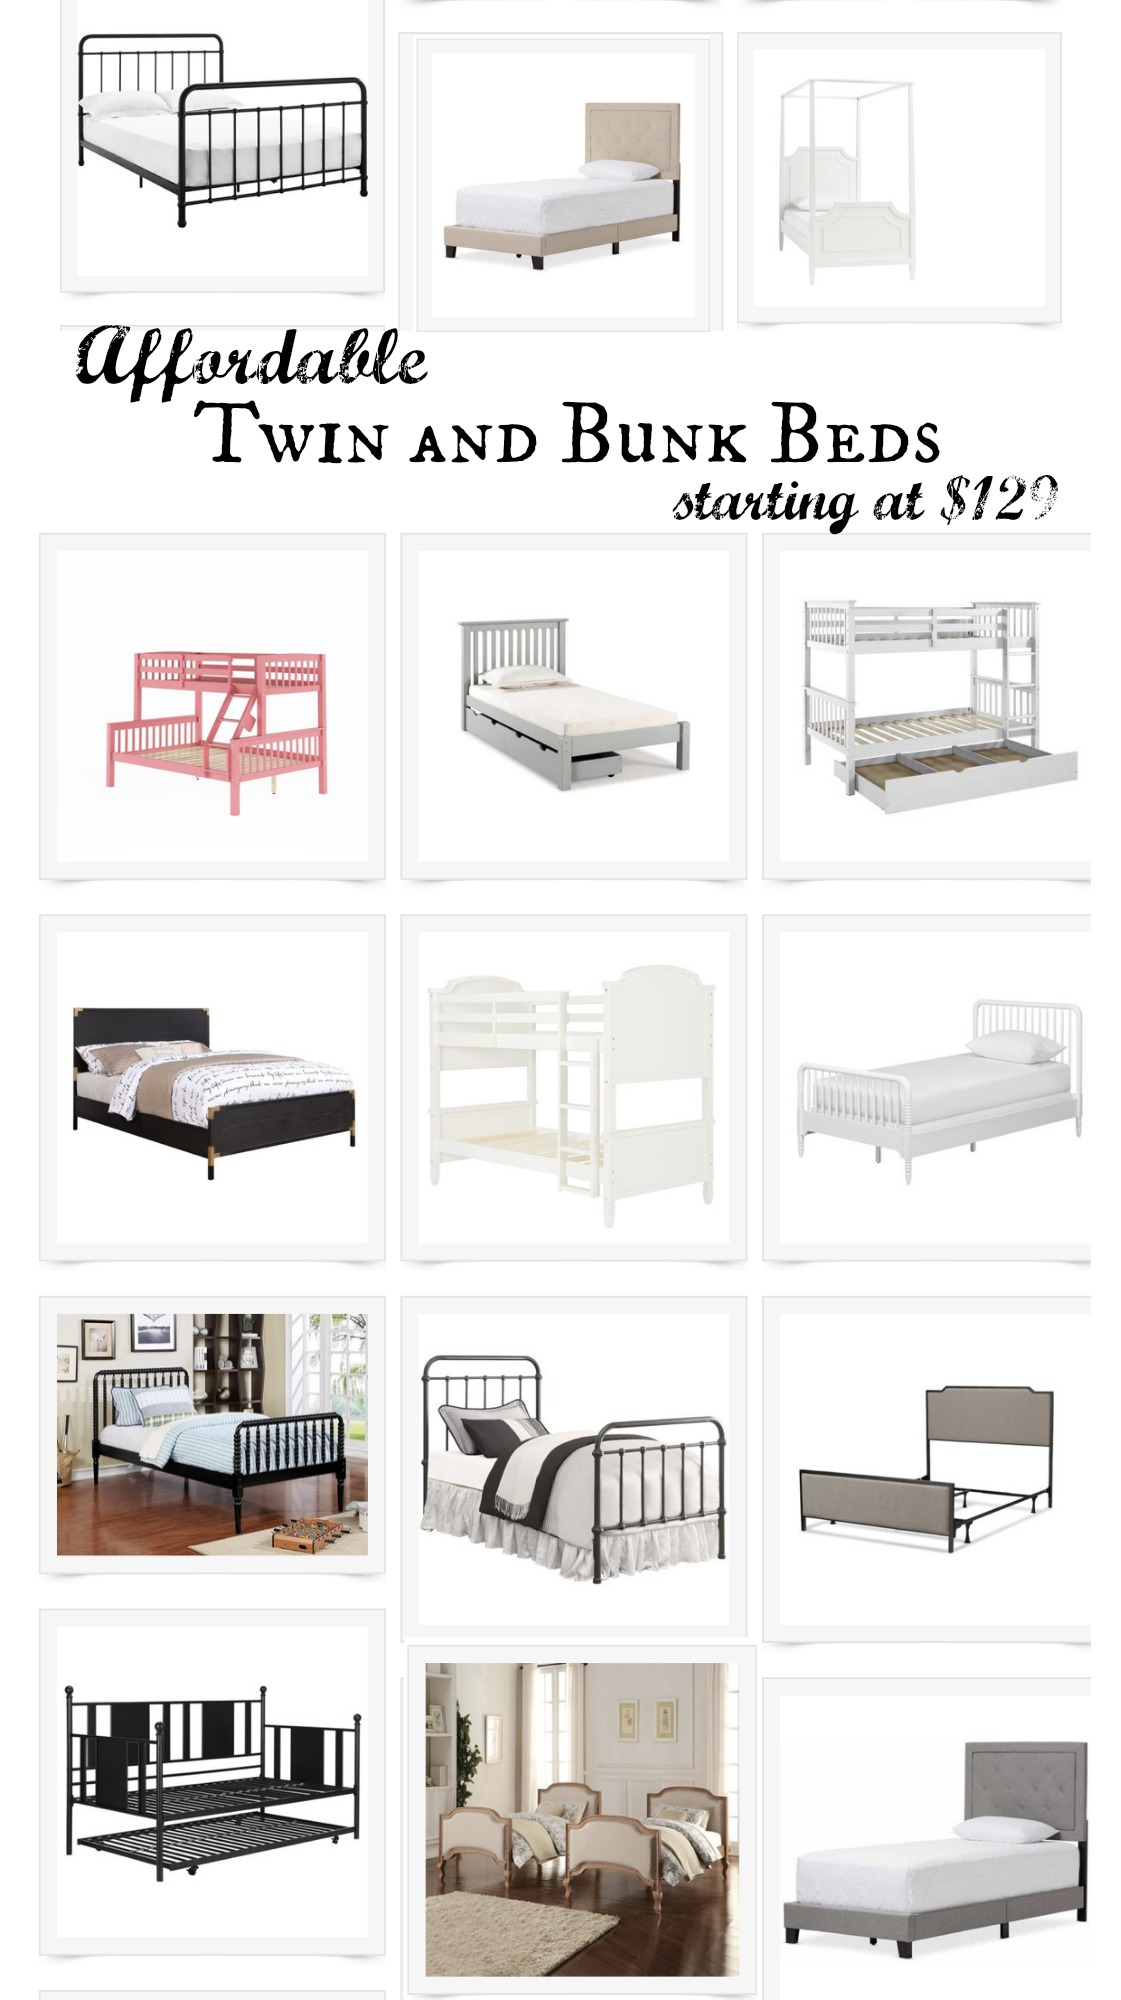 Affordable Twin and Bunk Beds- Starting at $129